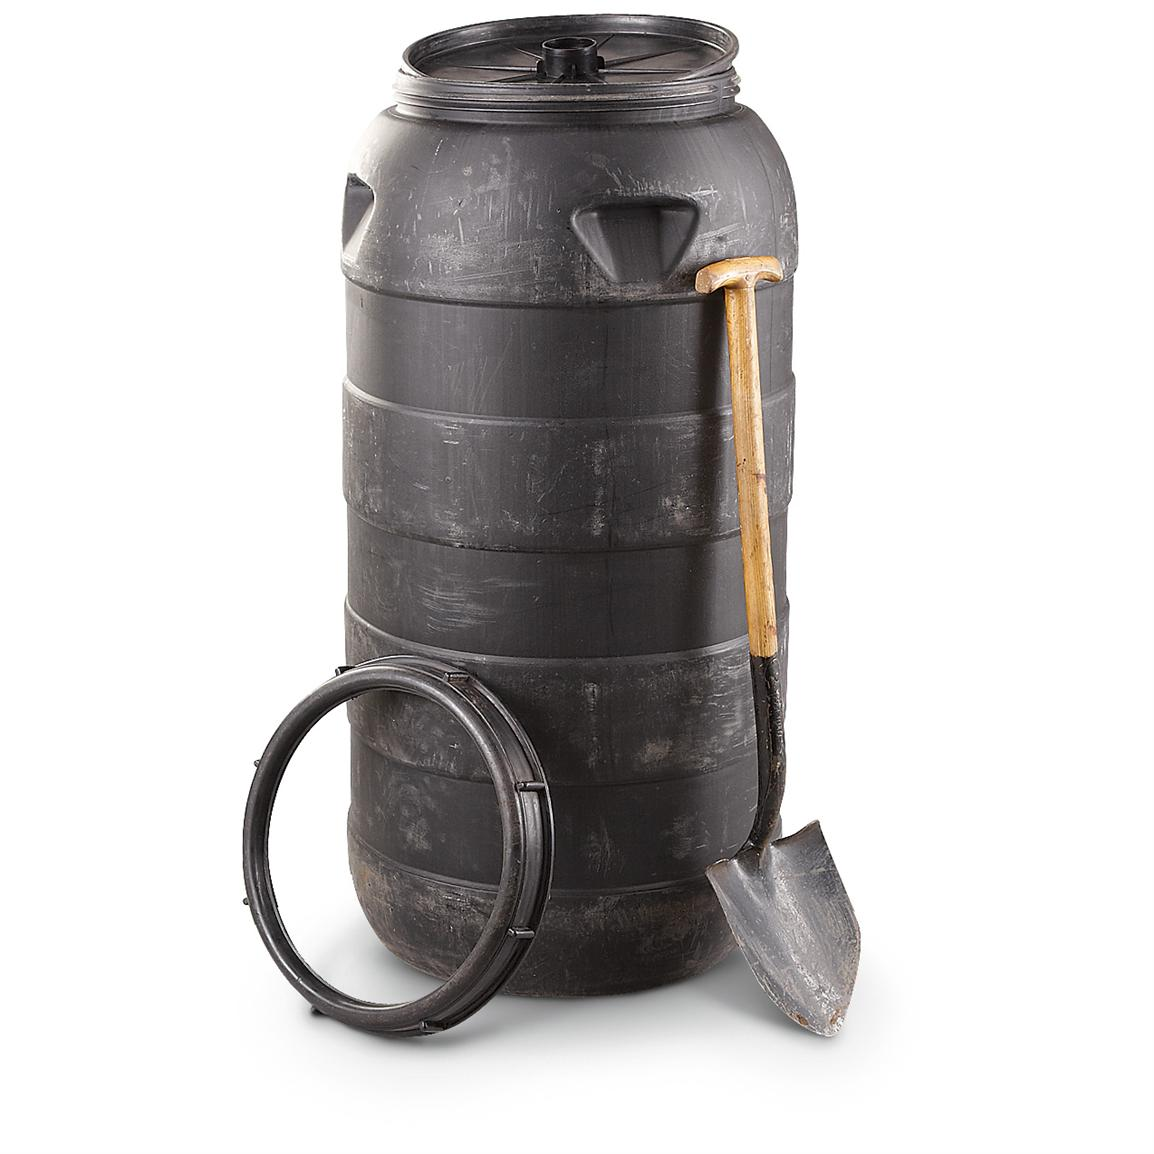 Used U.S. Military Surplus 70-gallon Molded Barrel, Black